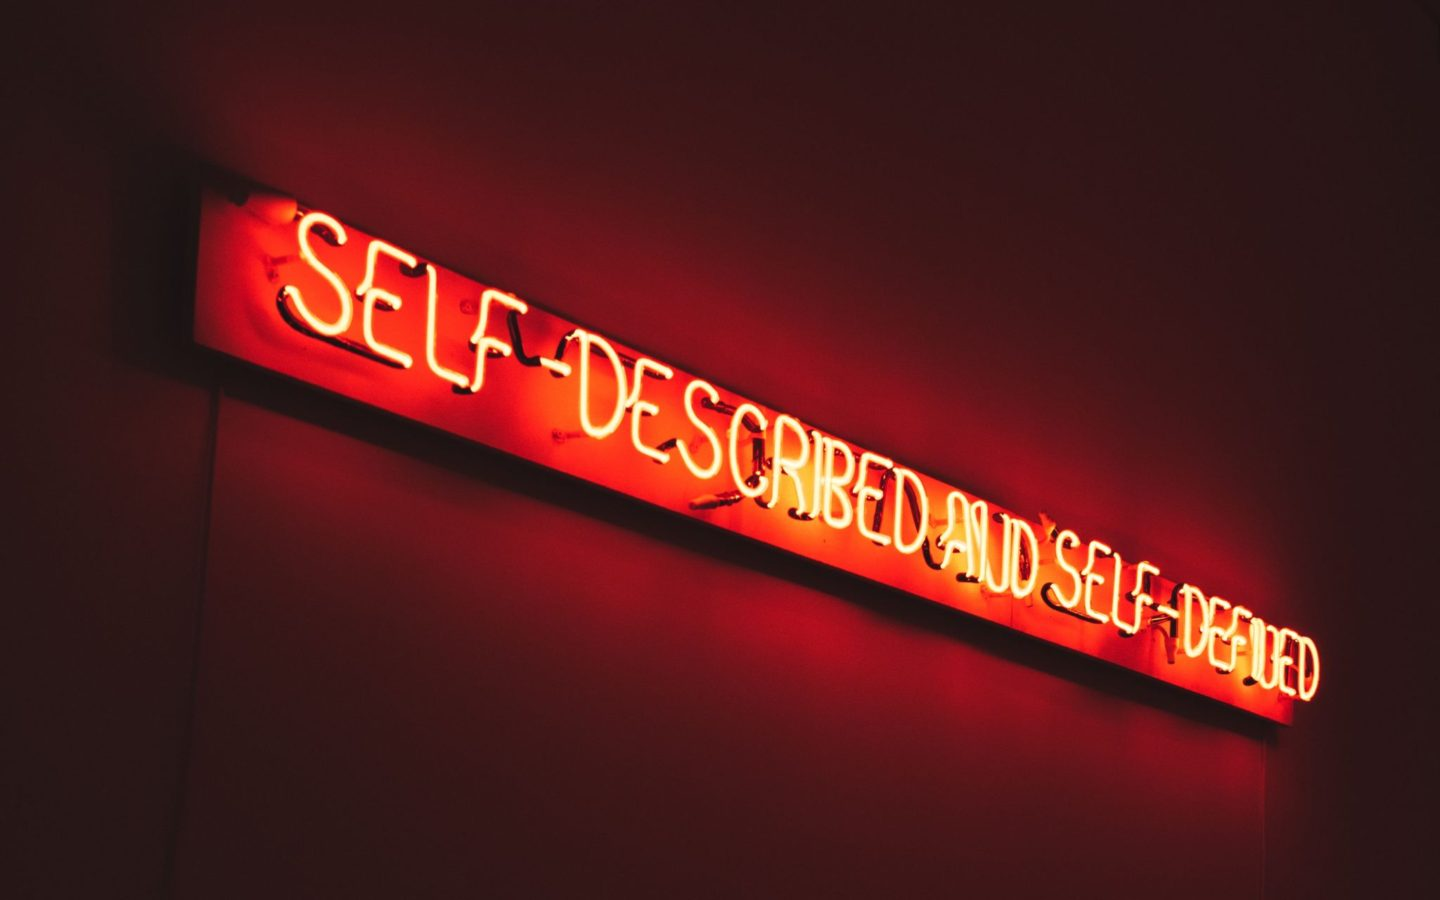 Debunking Selfhood: the myth & folly of self